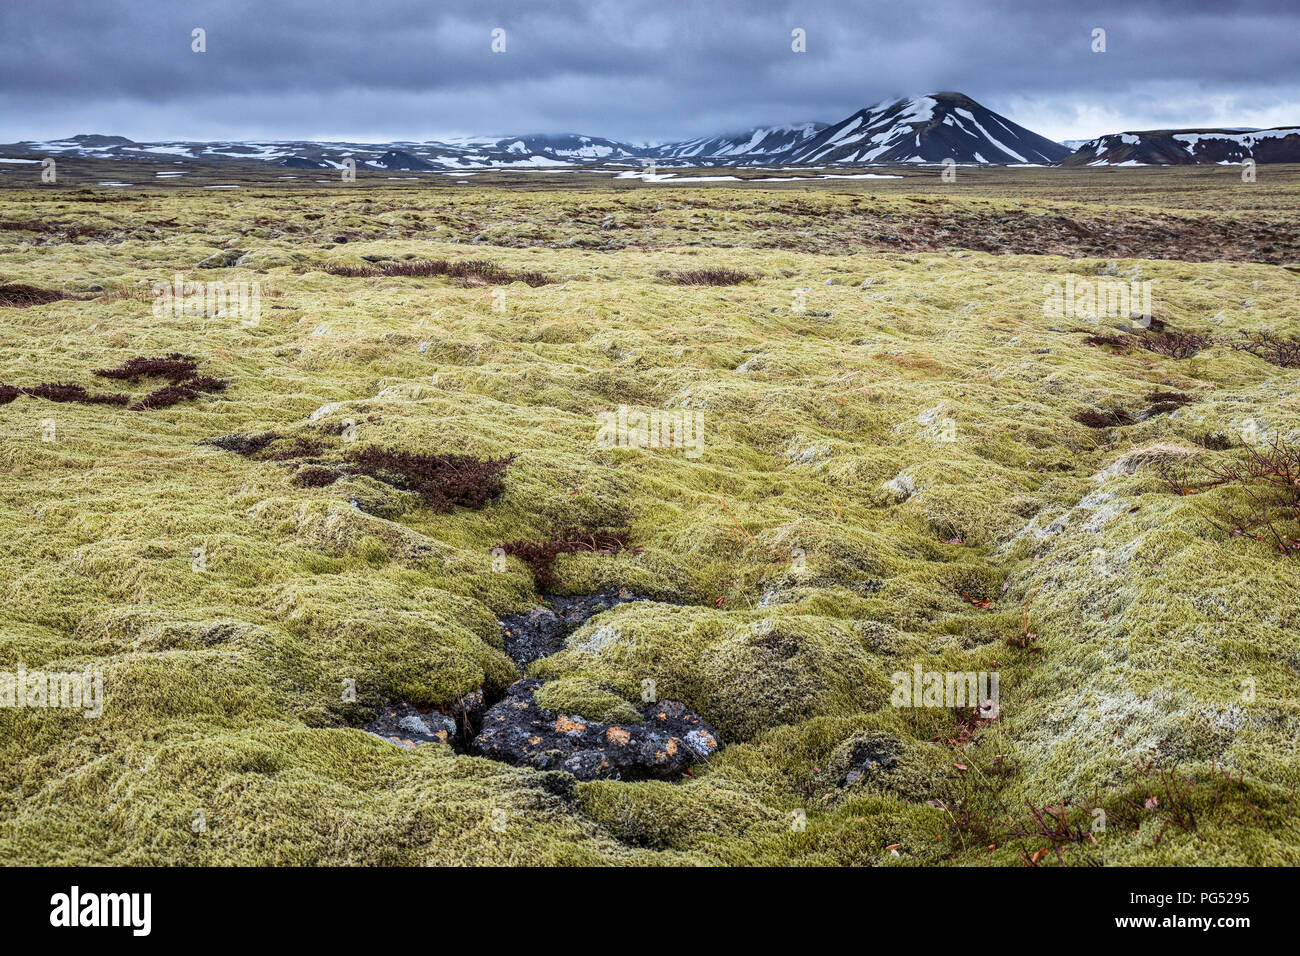 Iceland mossy field at cloudy day - Stock Image